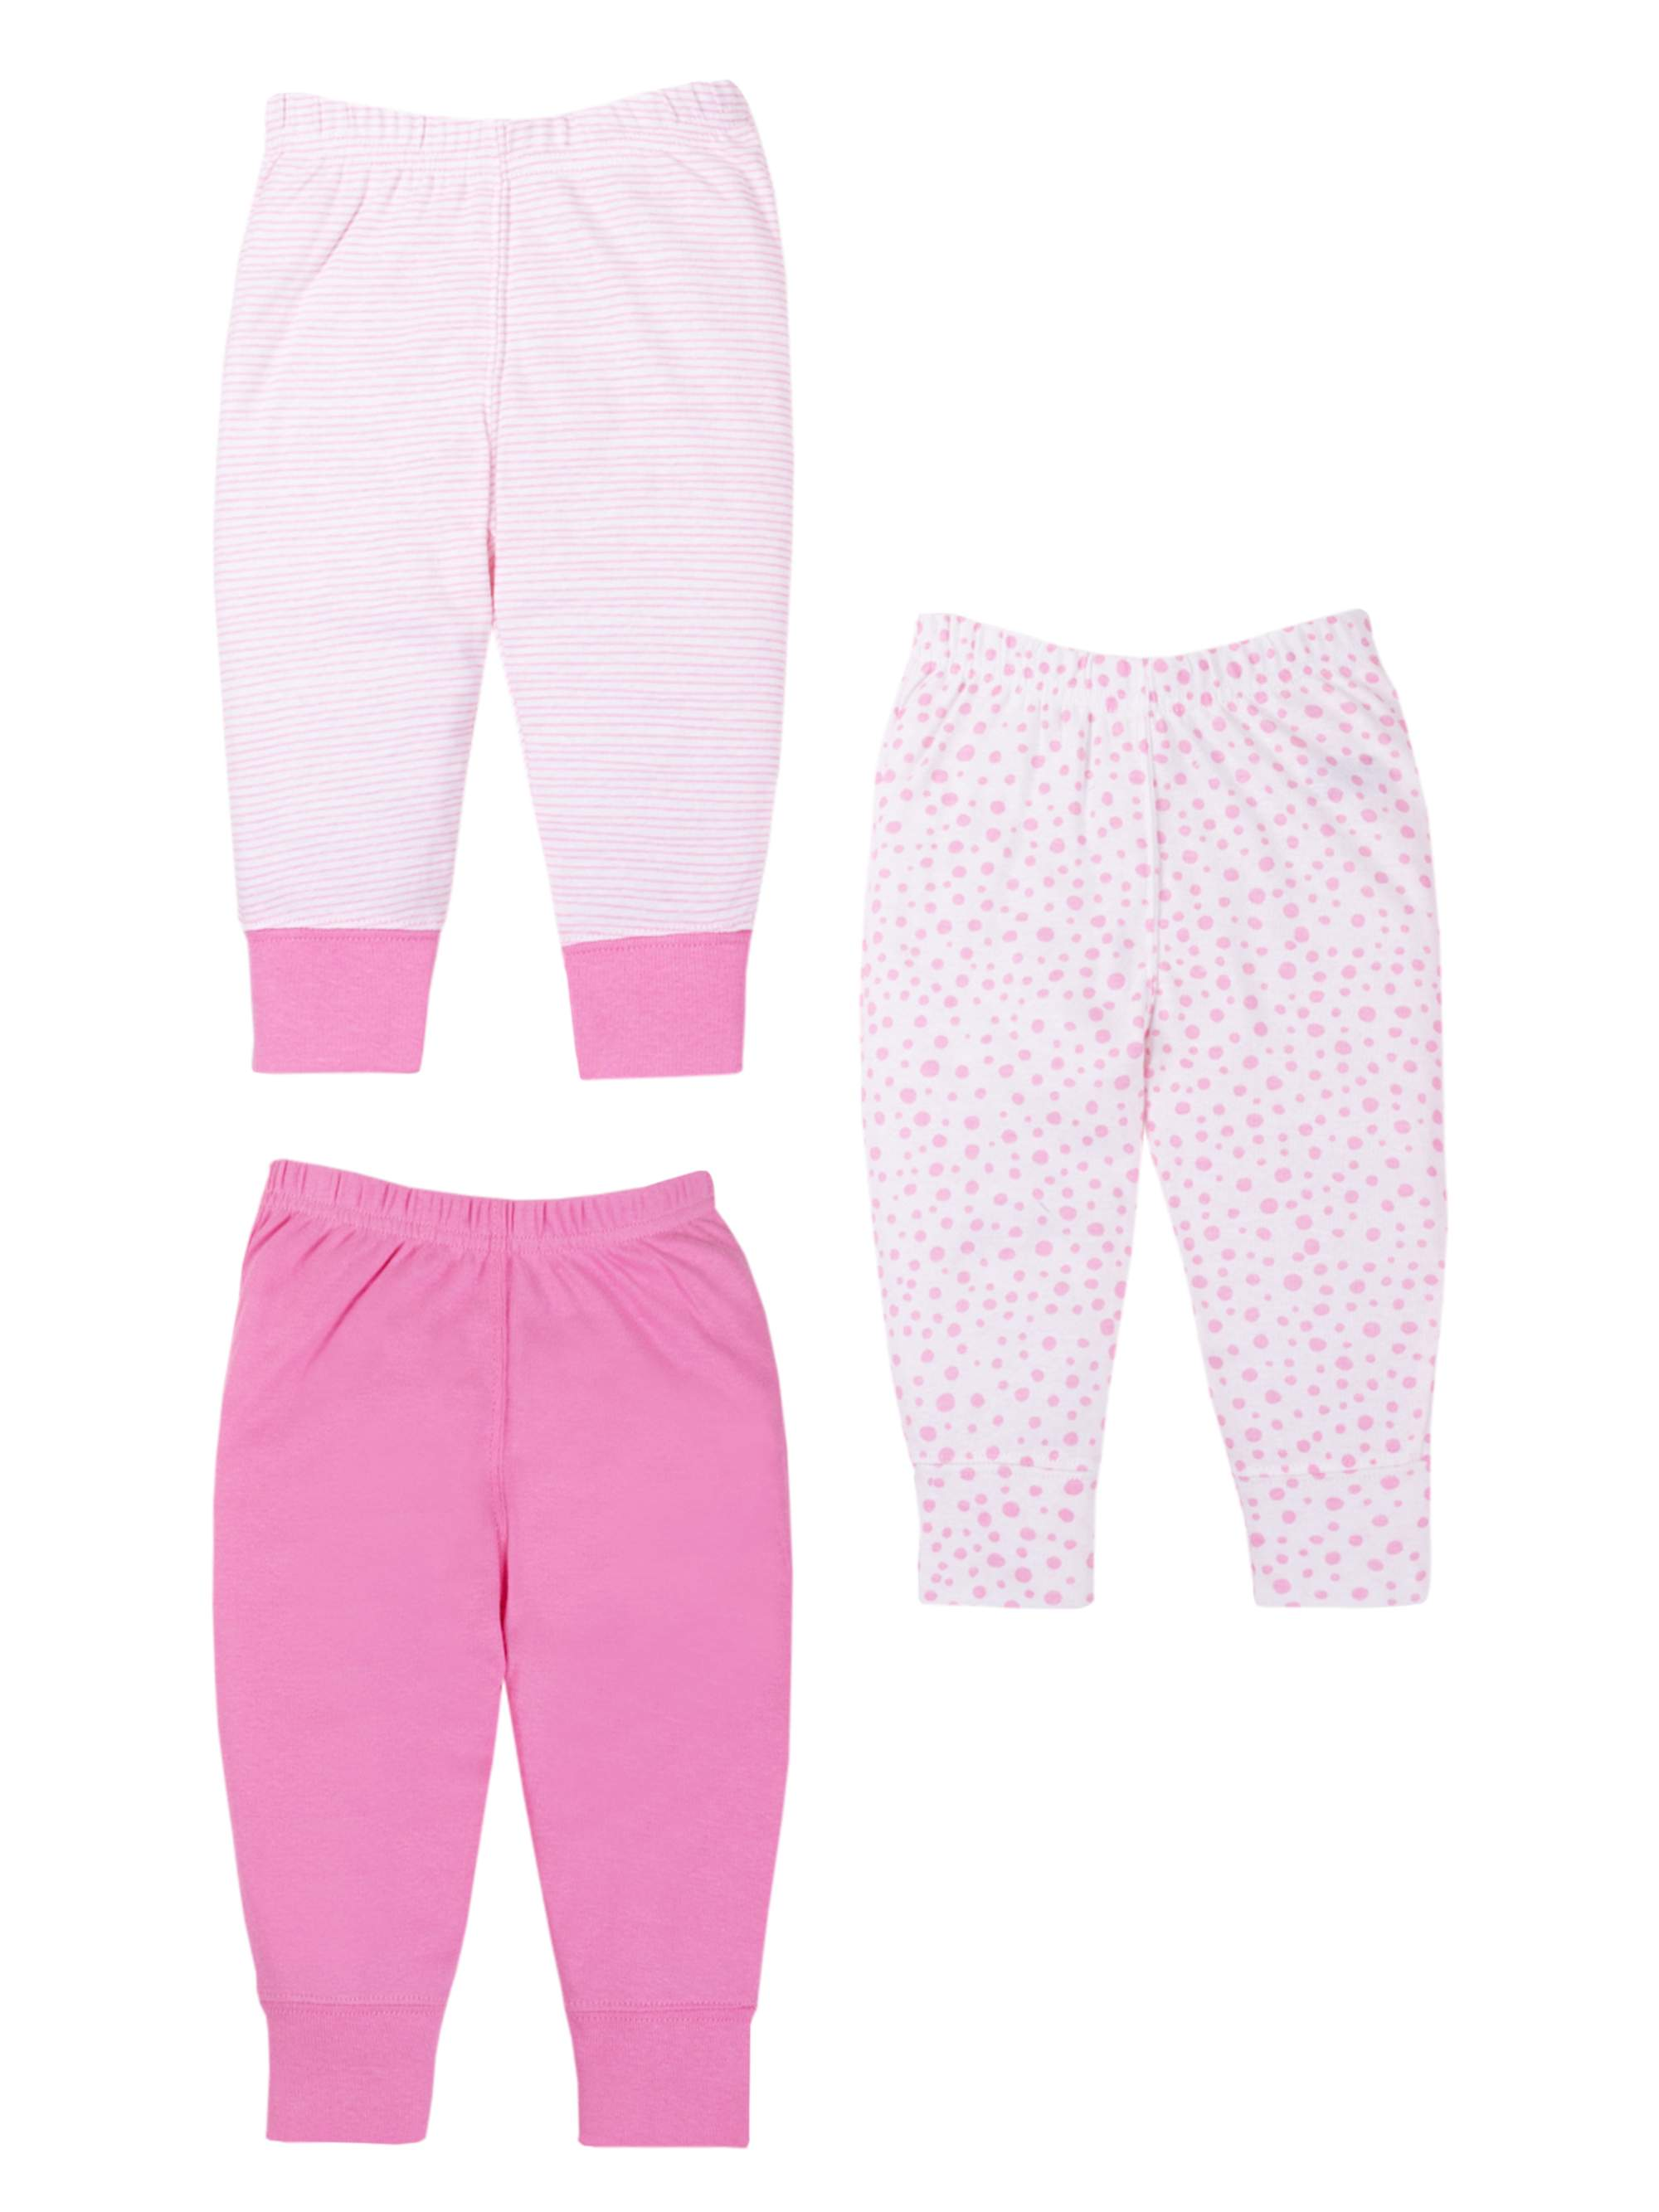 Knits Pants, 3-pack (Baby Girls)